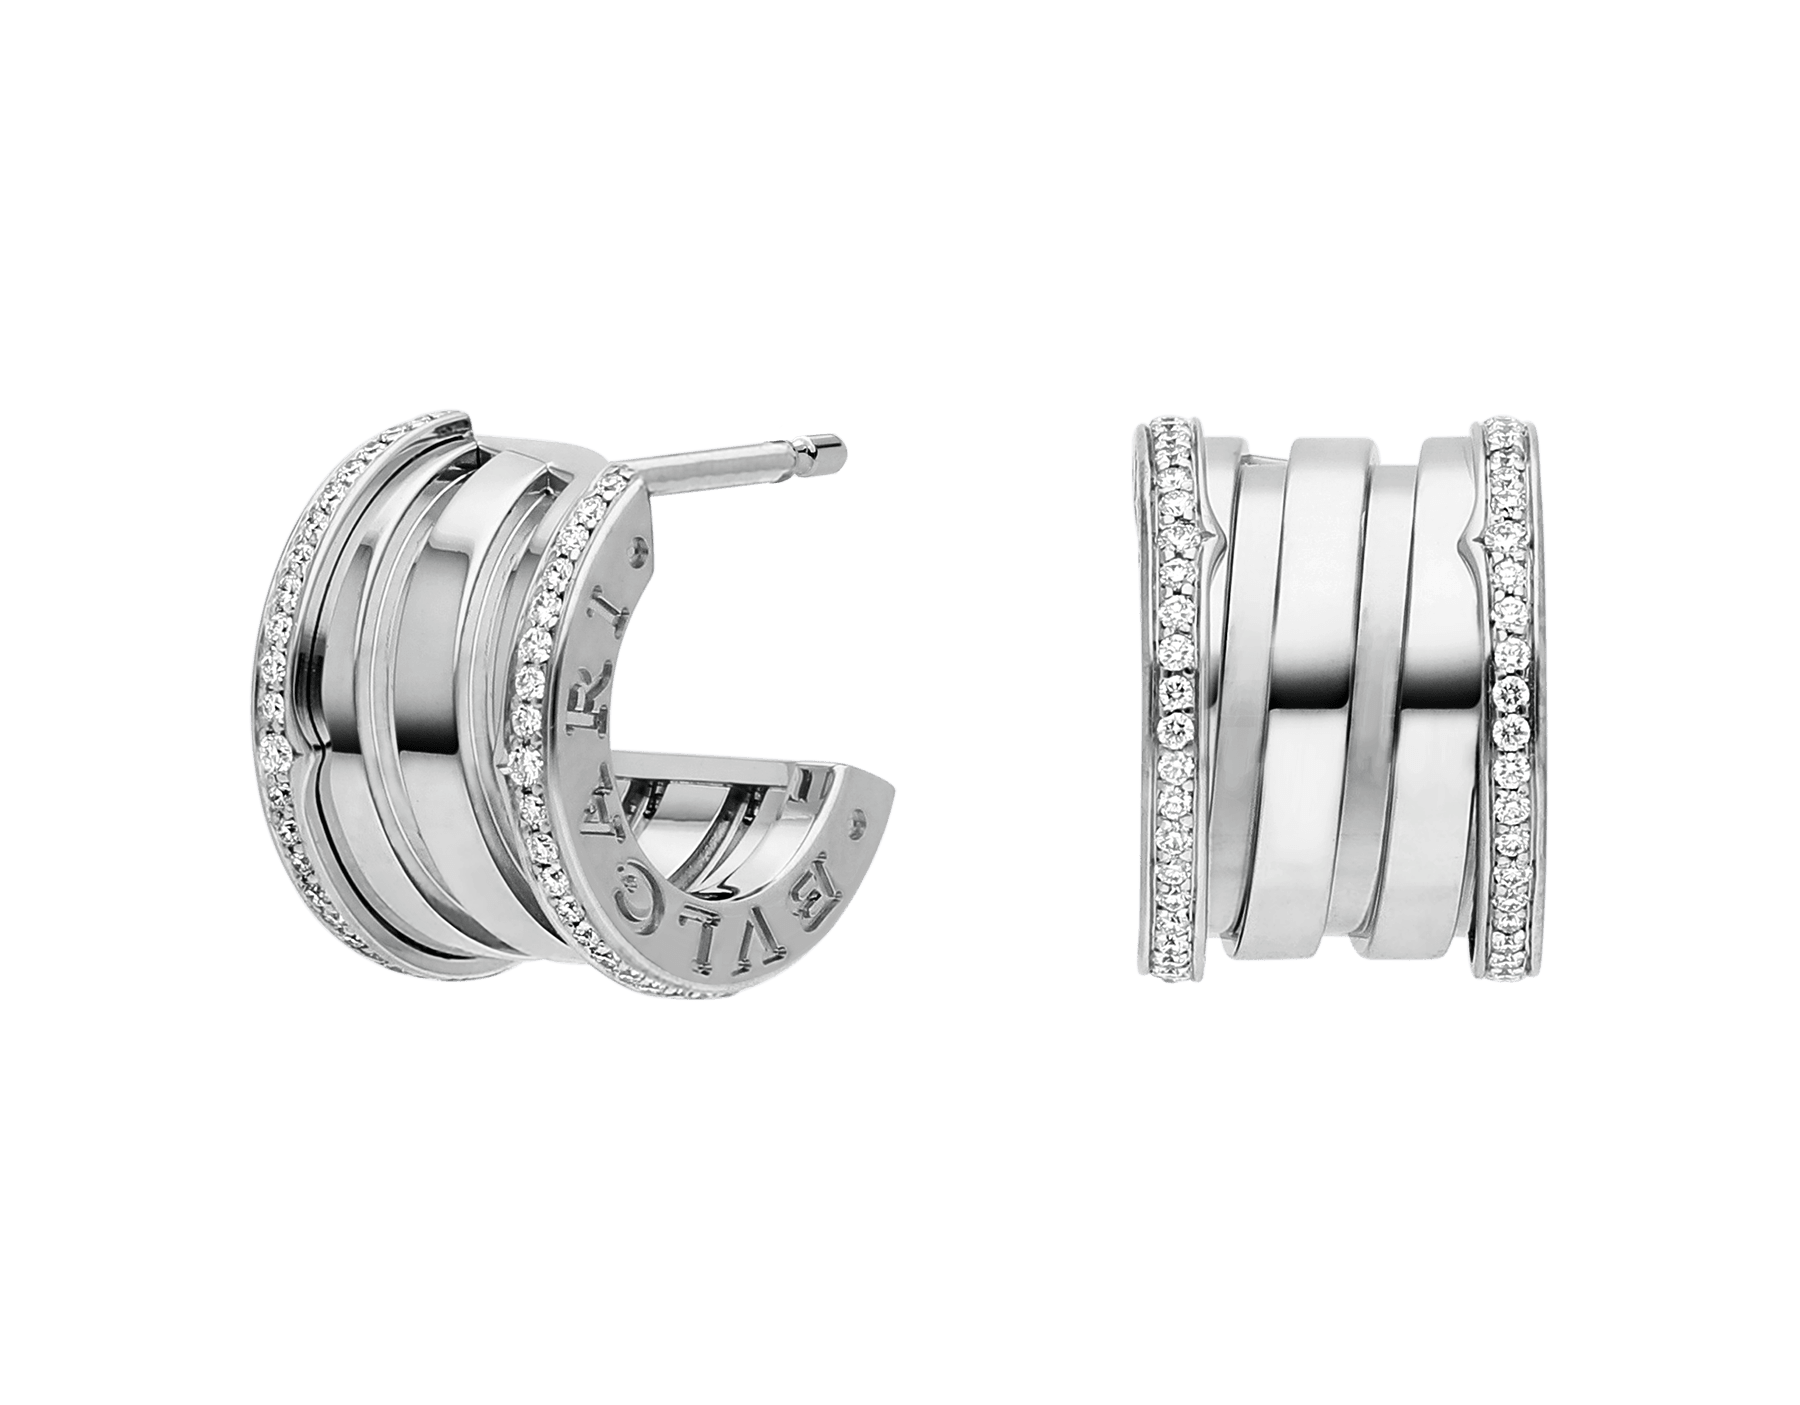 Fusing the bold character of their fluid curves with the preciousness of pavé diamonds, the B.zero1 earrings reveal the contemporary elegance and captivating charisma of a jewellery icon. 353797 image 1